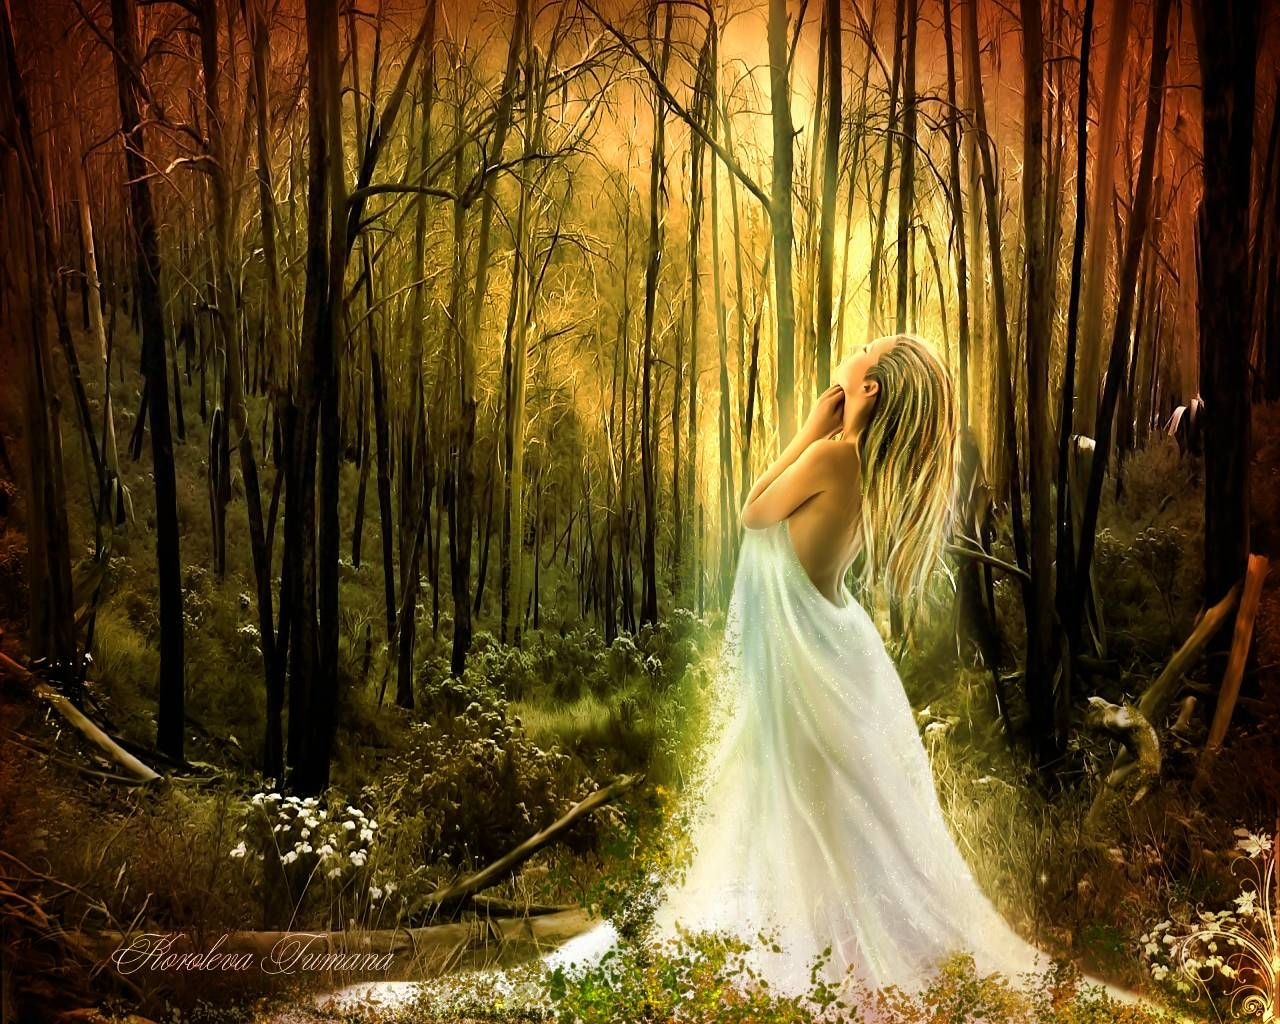 Free fairy wallpaper and screensavers wallpapers pinterest free fairy wallpaper and screensavers voltagebd Image collections